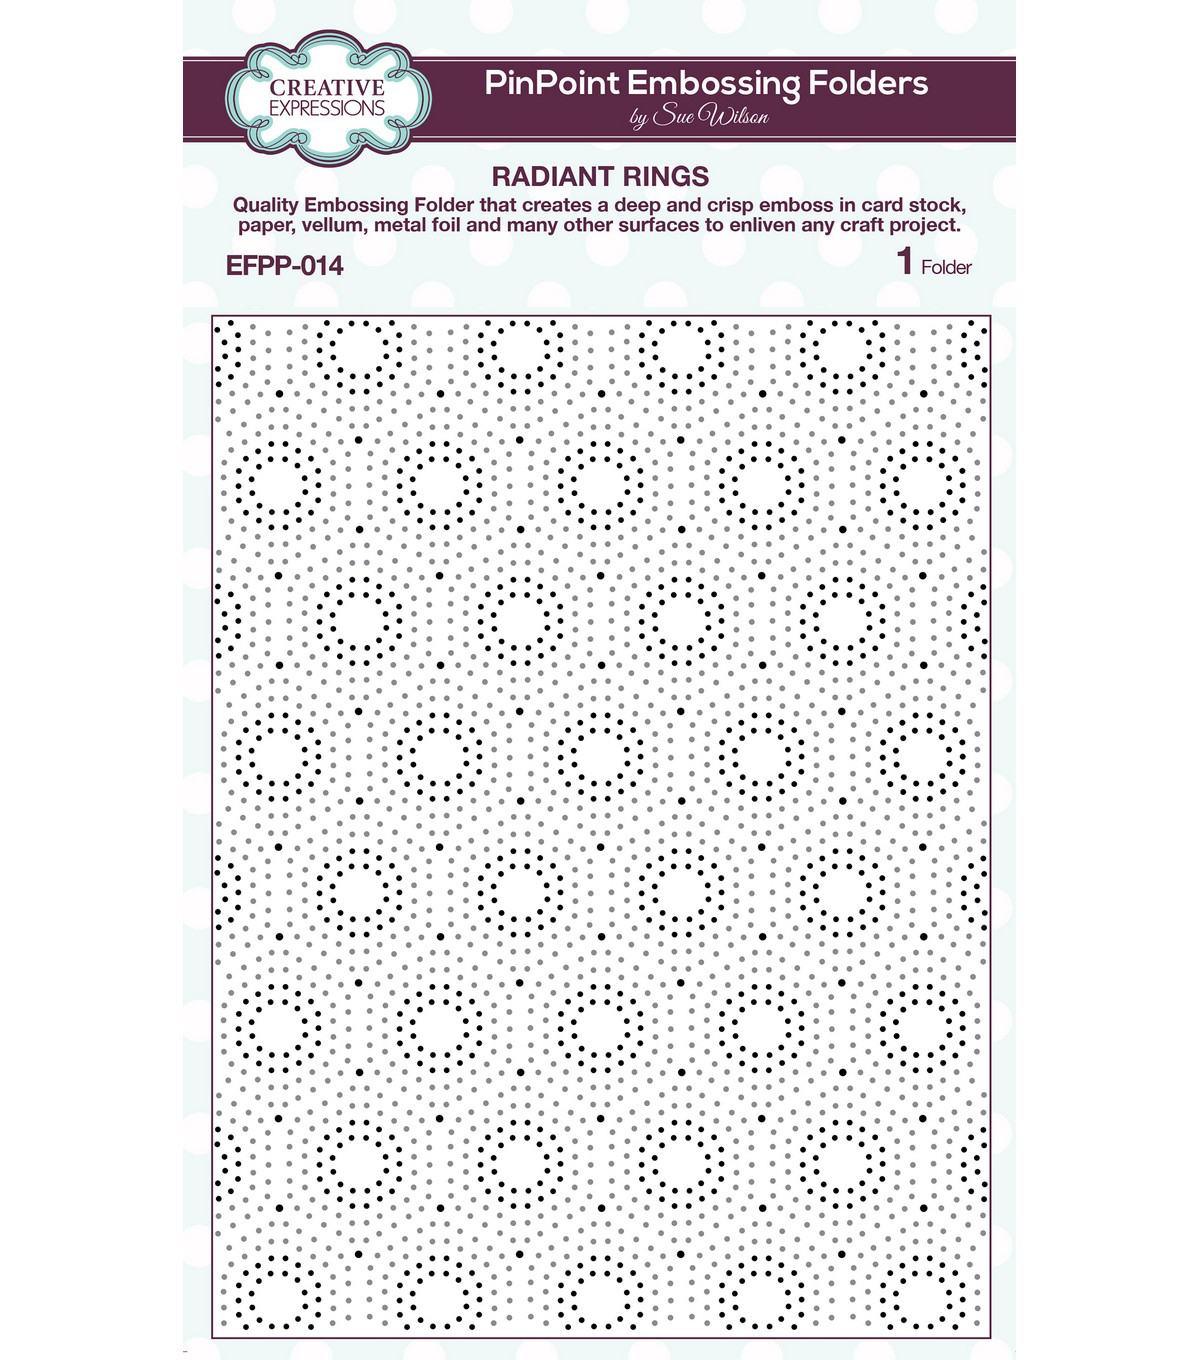 Creative Expressions PinPoint Embossing Folder 5.75\u0022x7.5\u0022-Radiant Rings